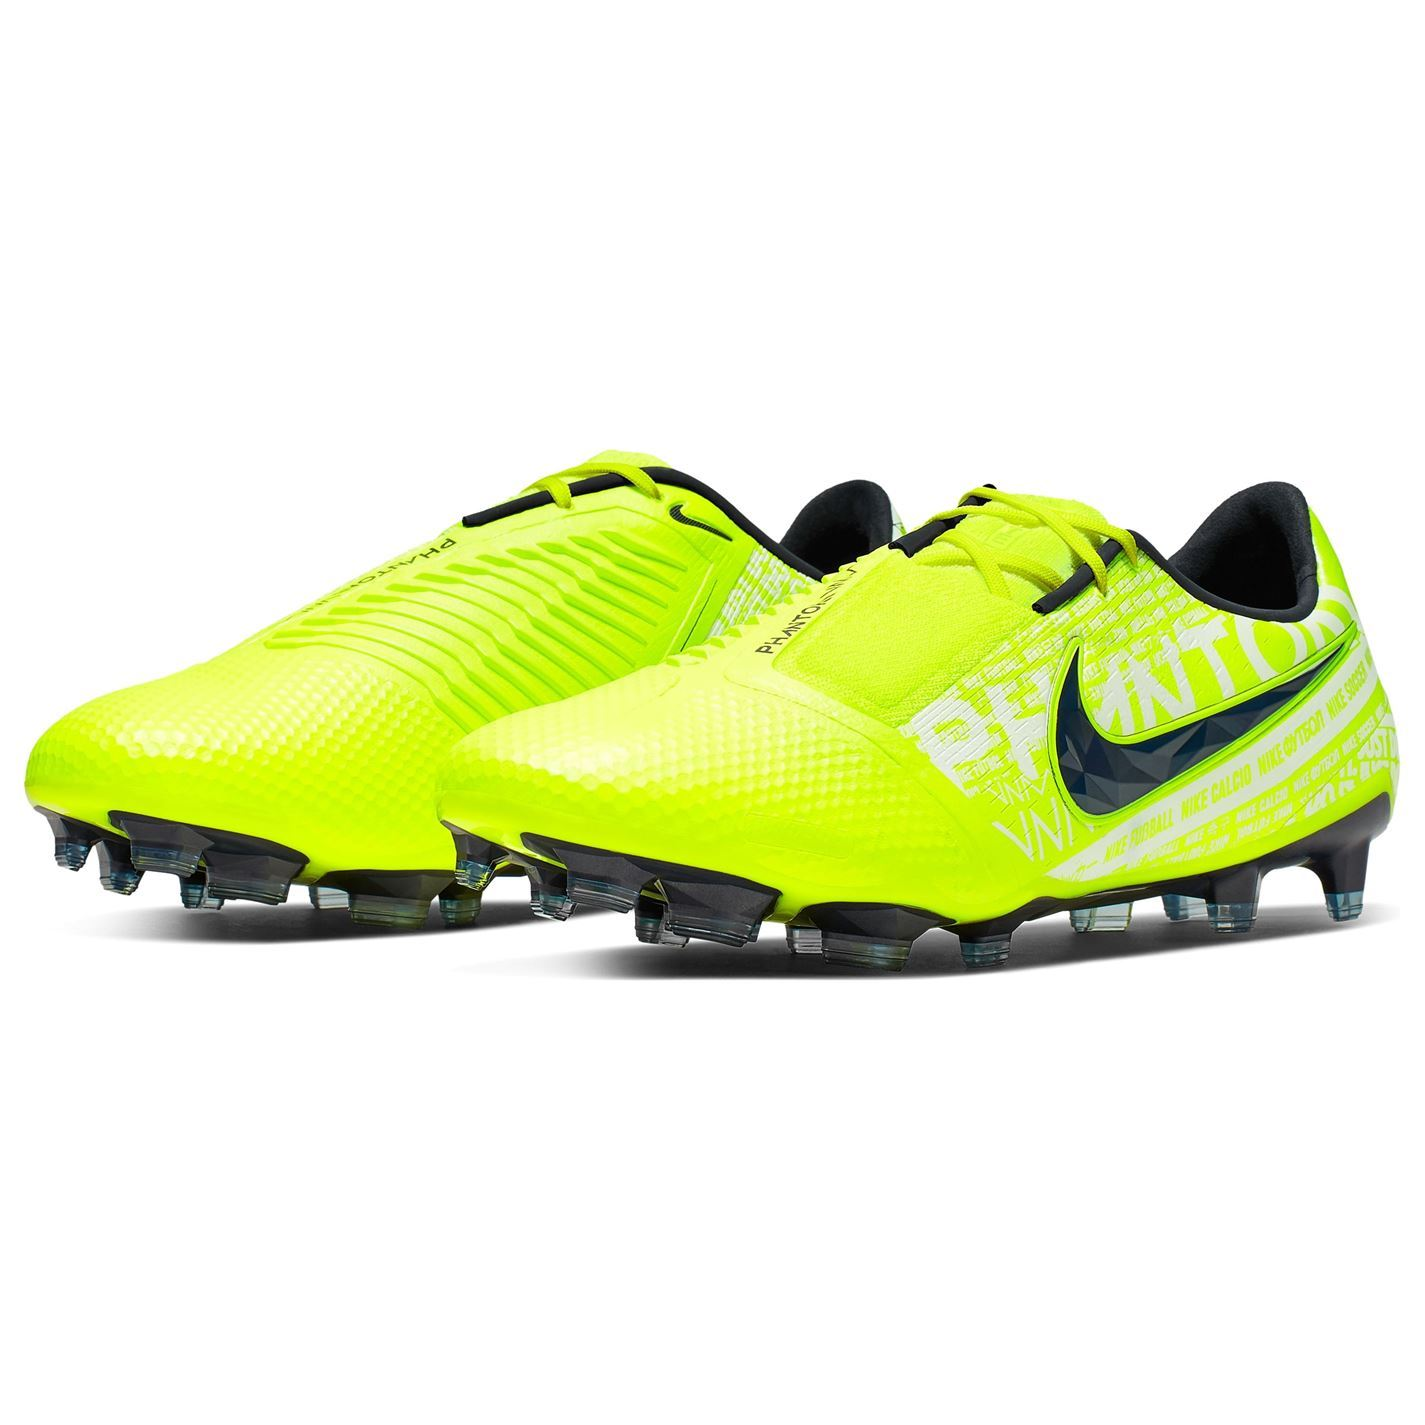 Nike-Phantom-Venom-Elite-Homme-FG-Firm-Ground-Chaussures-De-Football-Chaussures-de-foot-crampons miniature 24